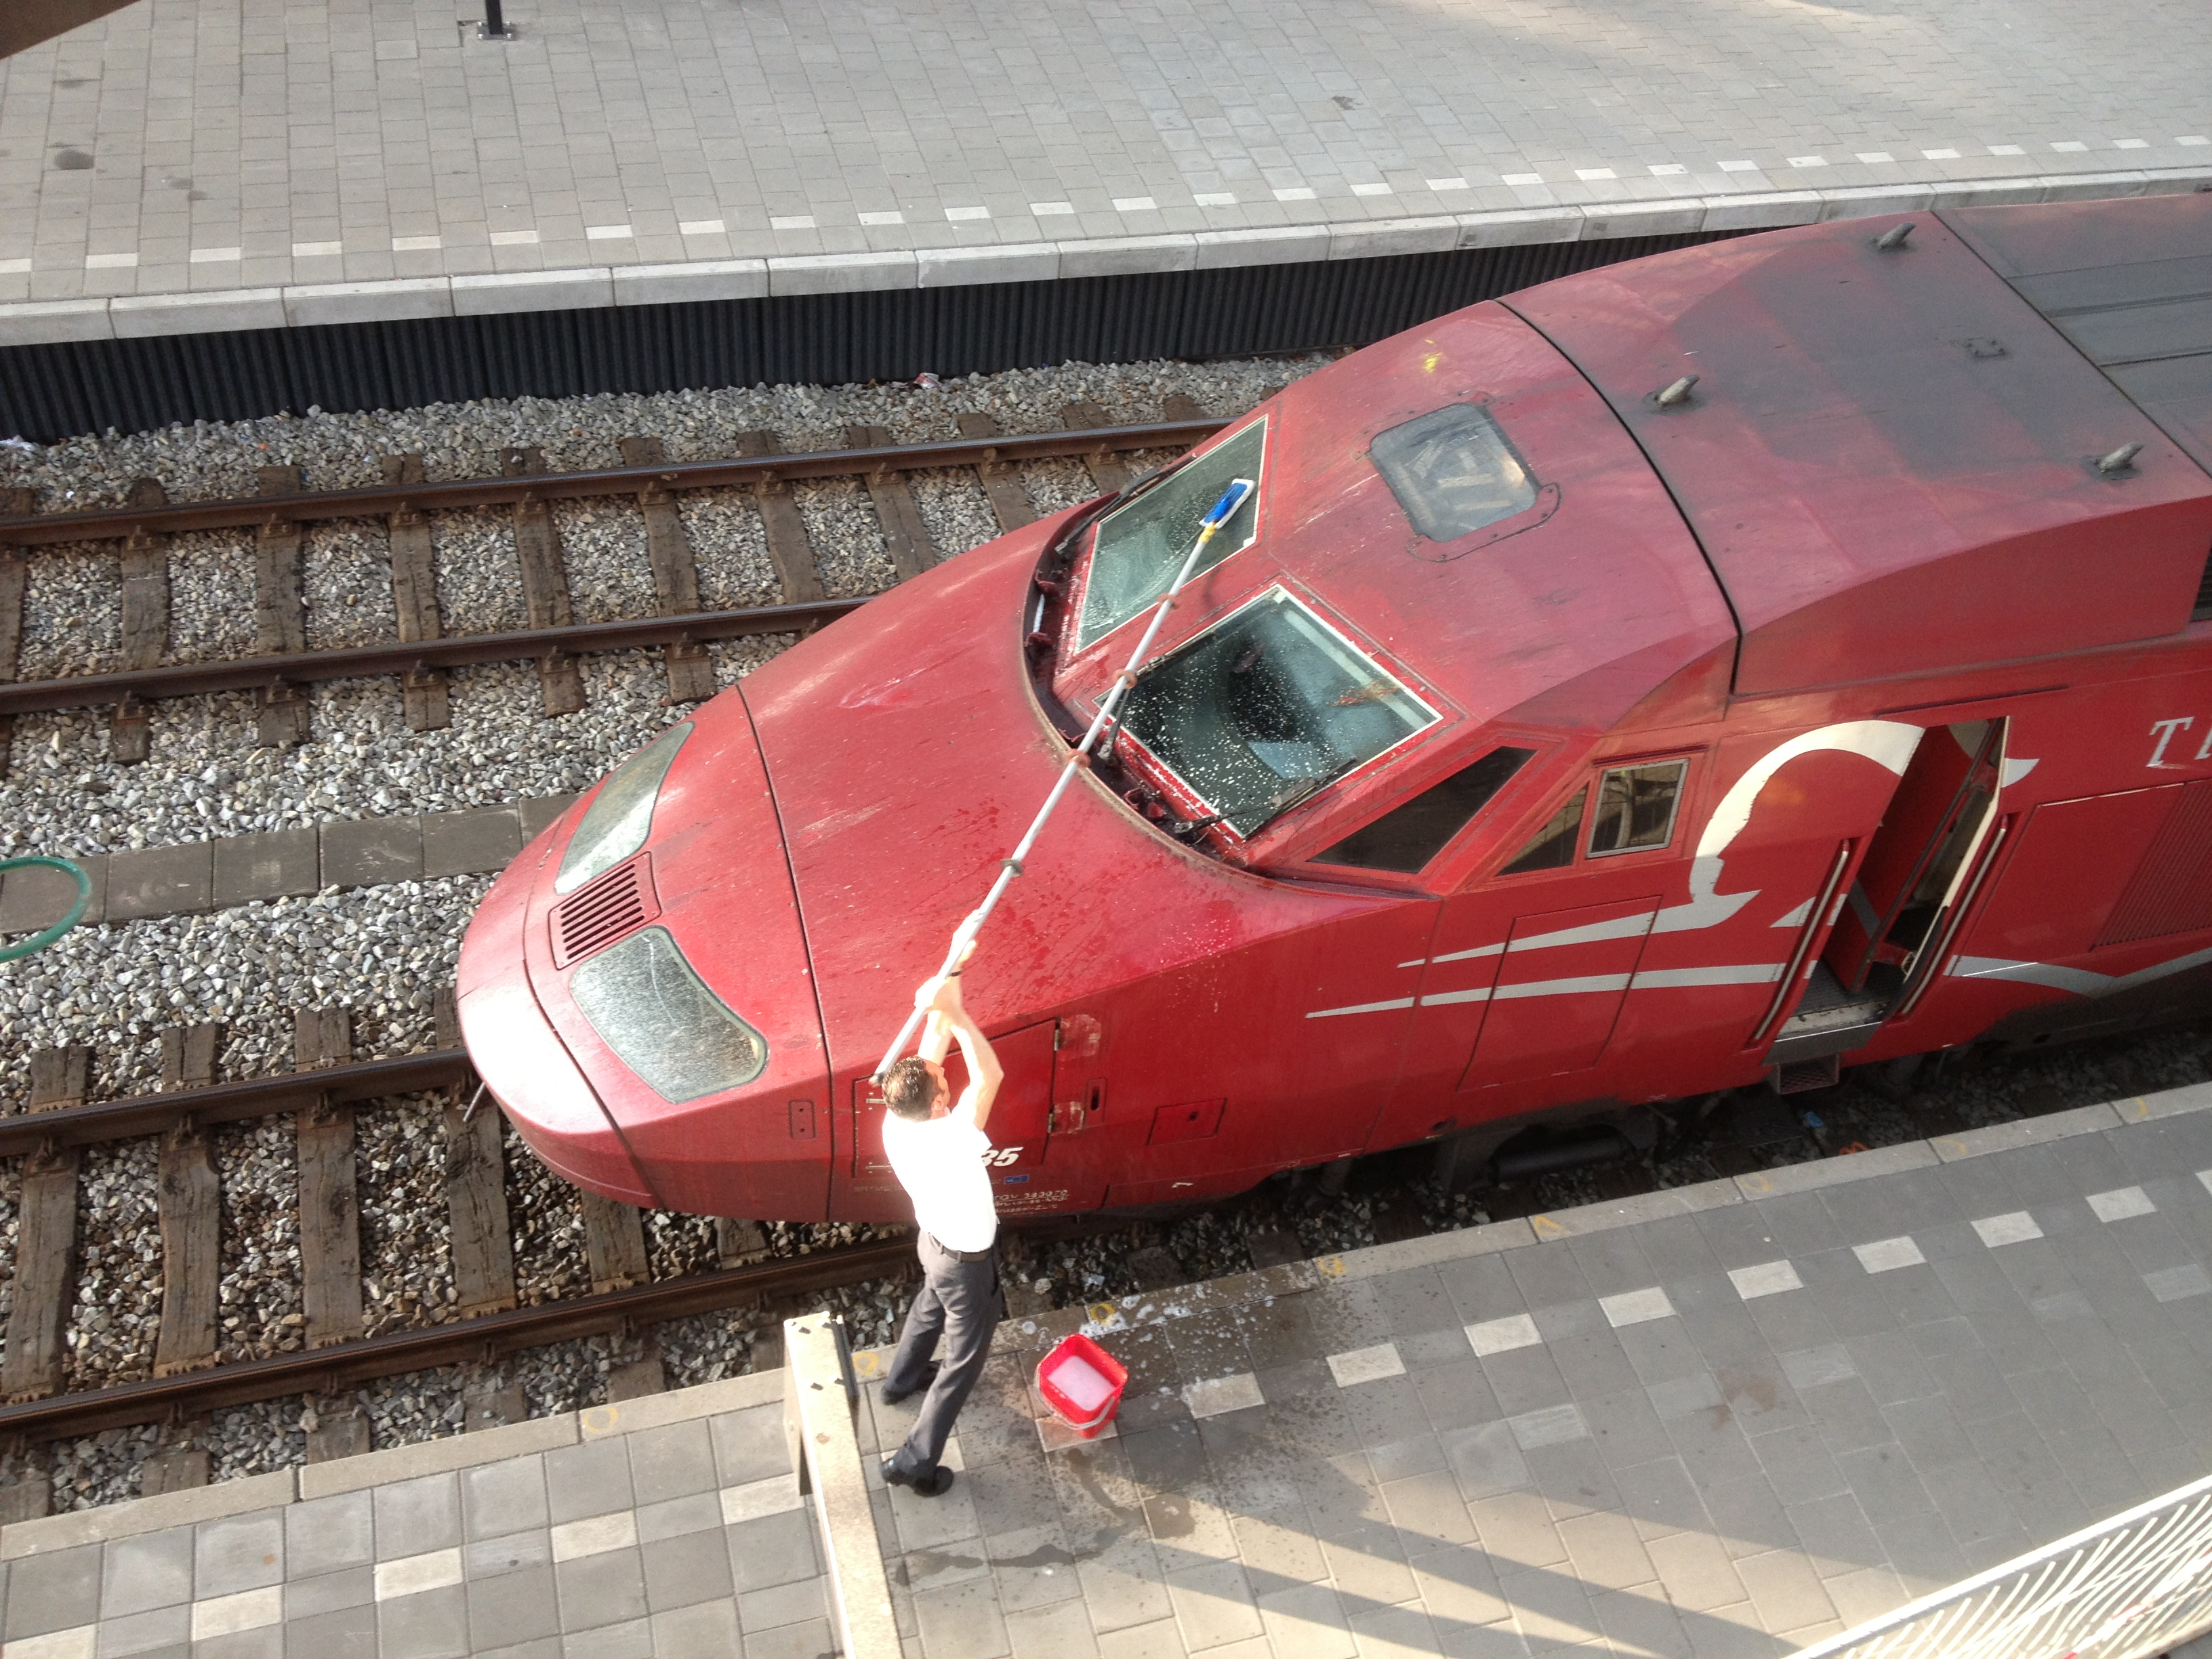 File:Thalys train driver cleaning his windscreen.JPG - Wikimedia Commons